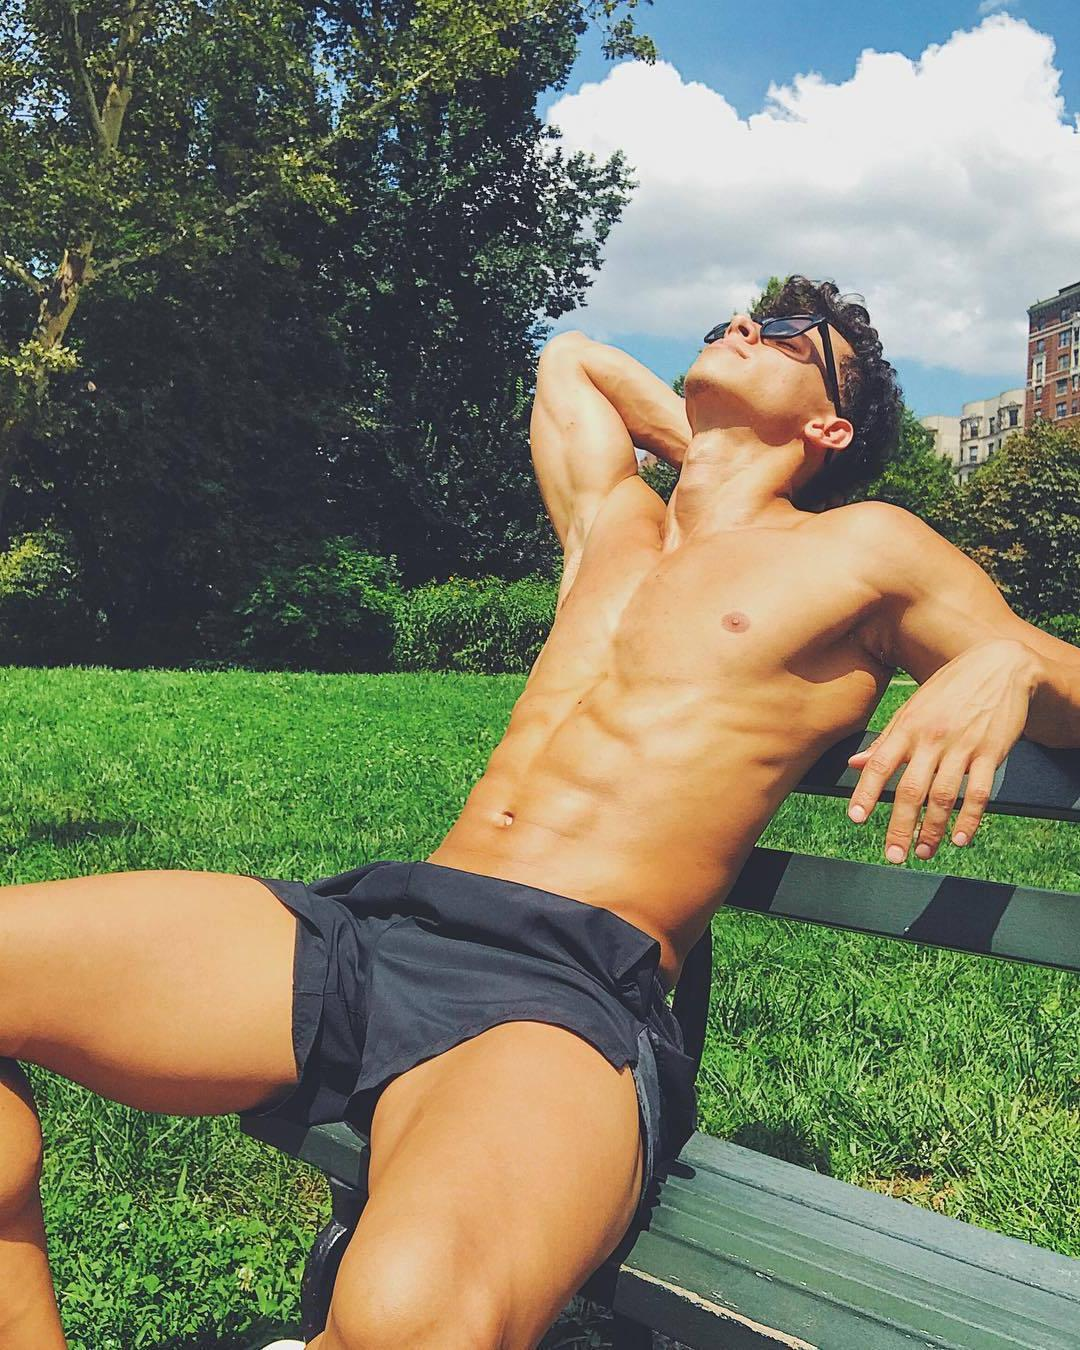 shirtless-fit-abs-young-boy-next-door-curly-hair-enjoying-sunglasses-tanning-outside-park